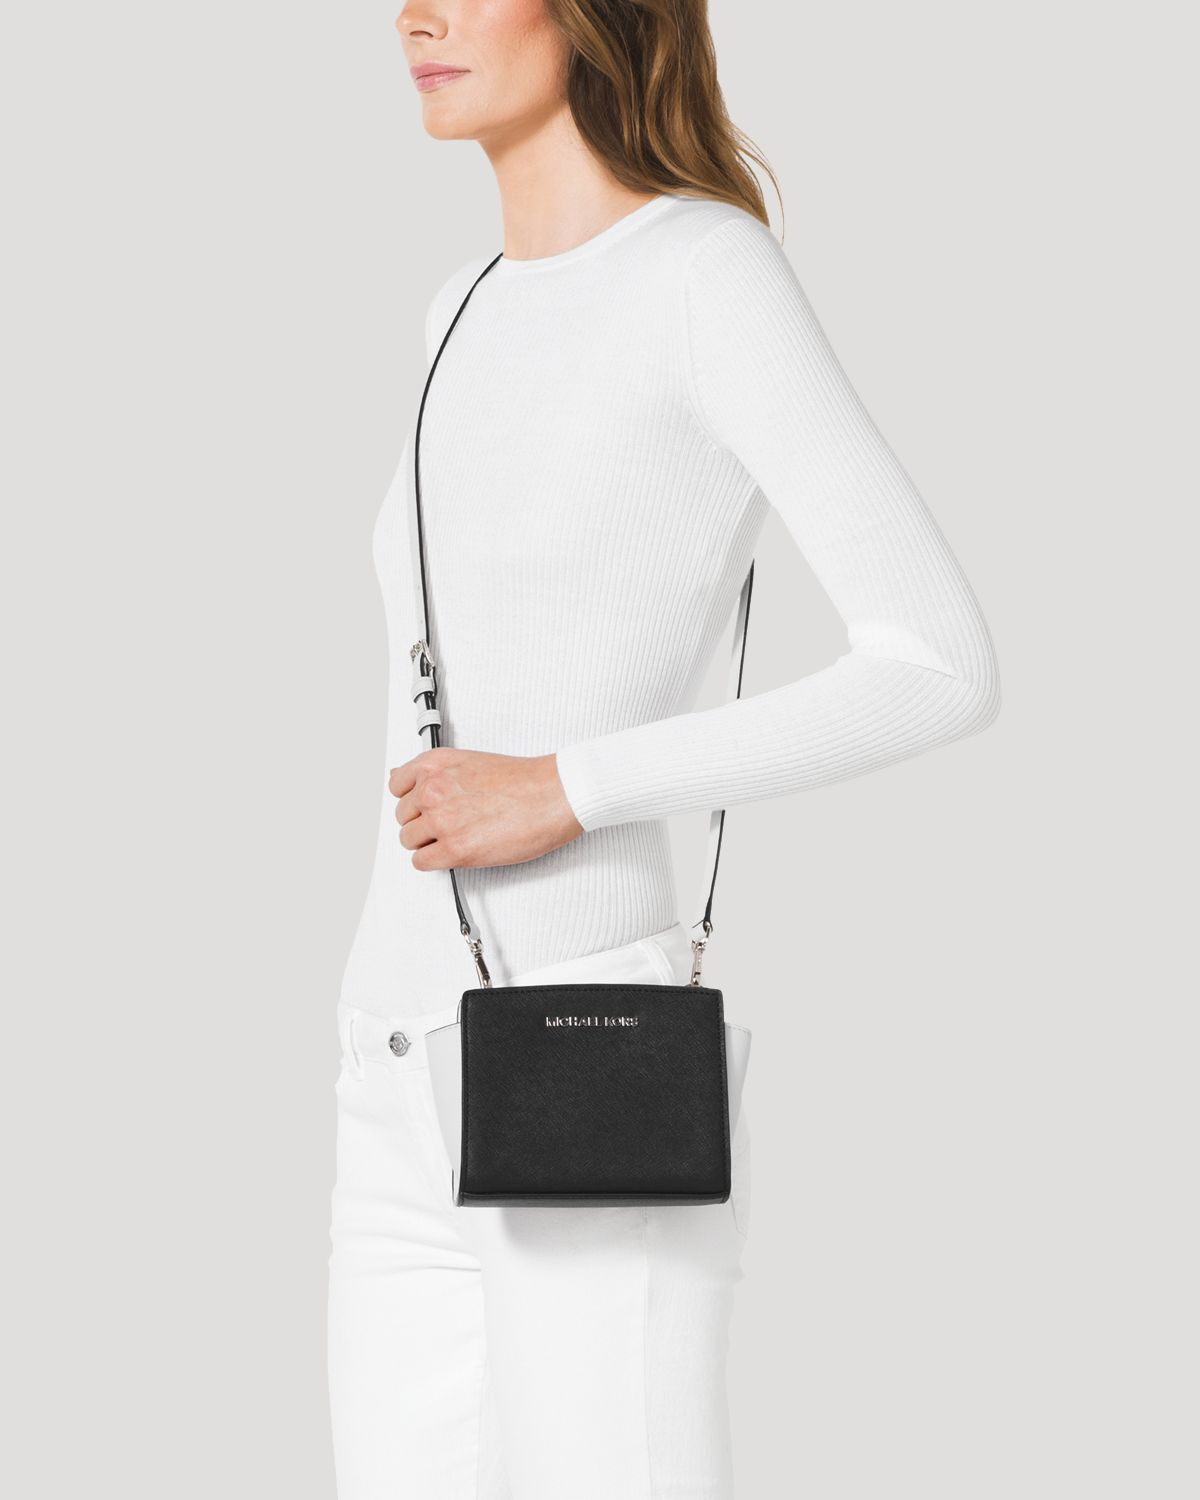 Lyst - MICHAEL Michael Kors Mini Selma Colorblock Crossbody ... a3491b649ec22